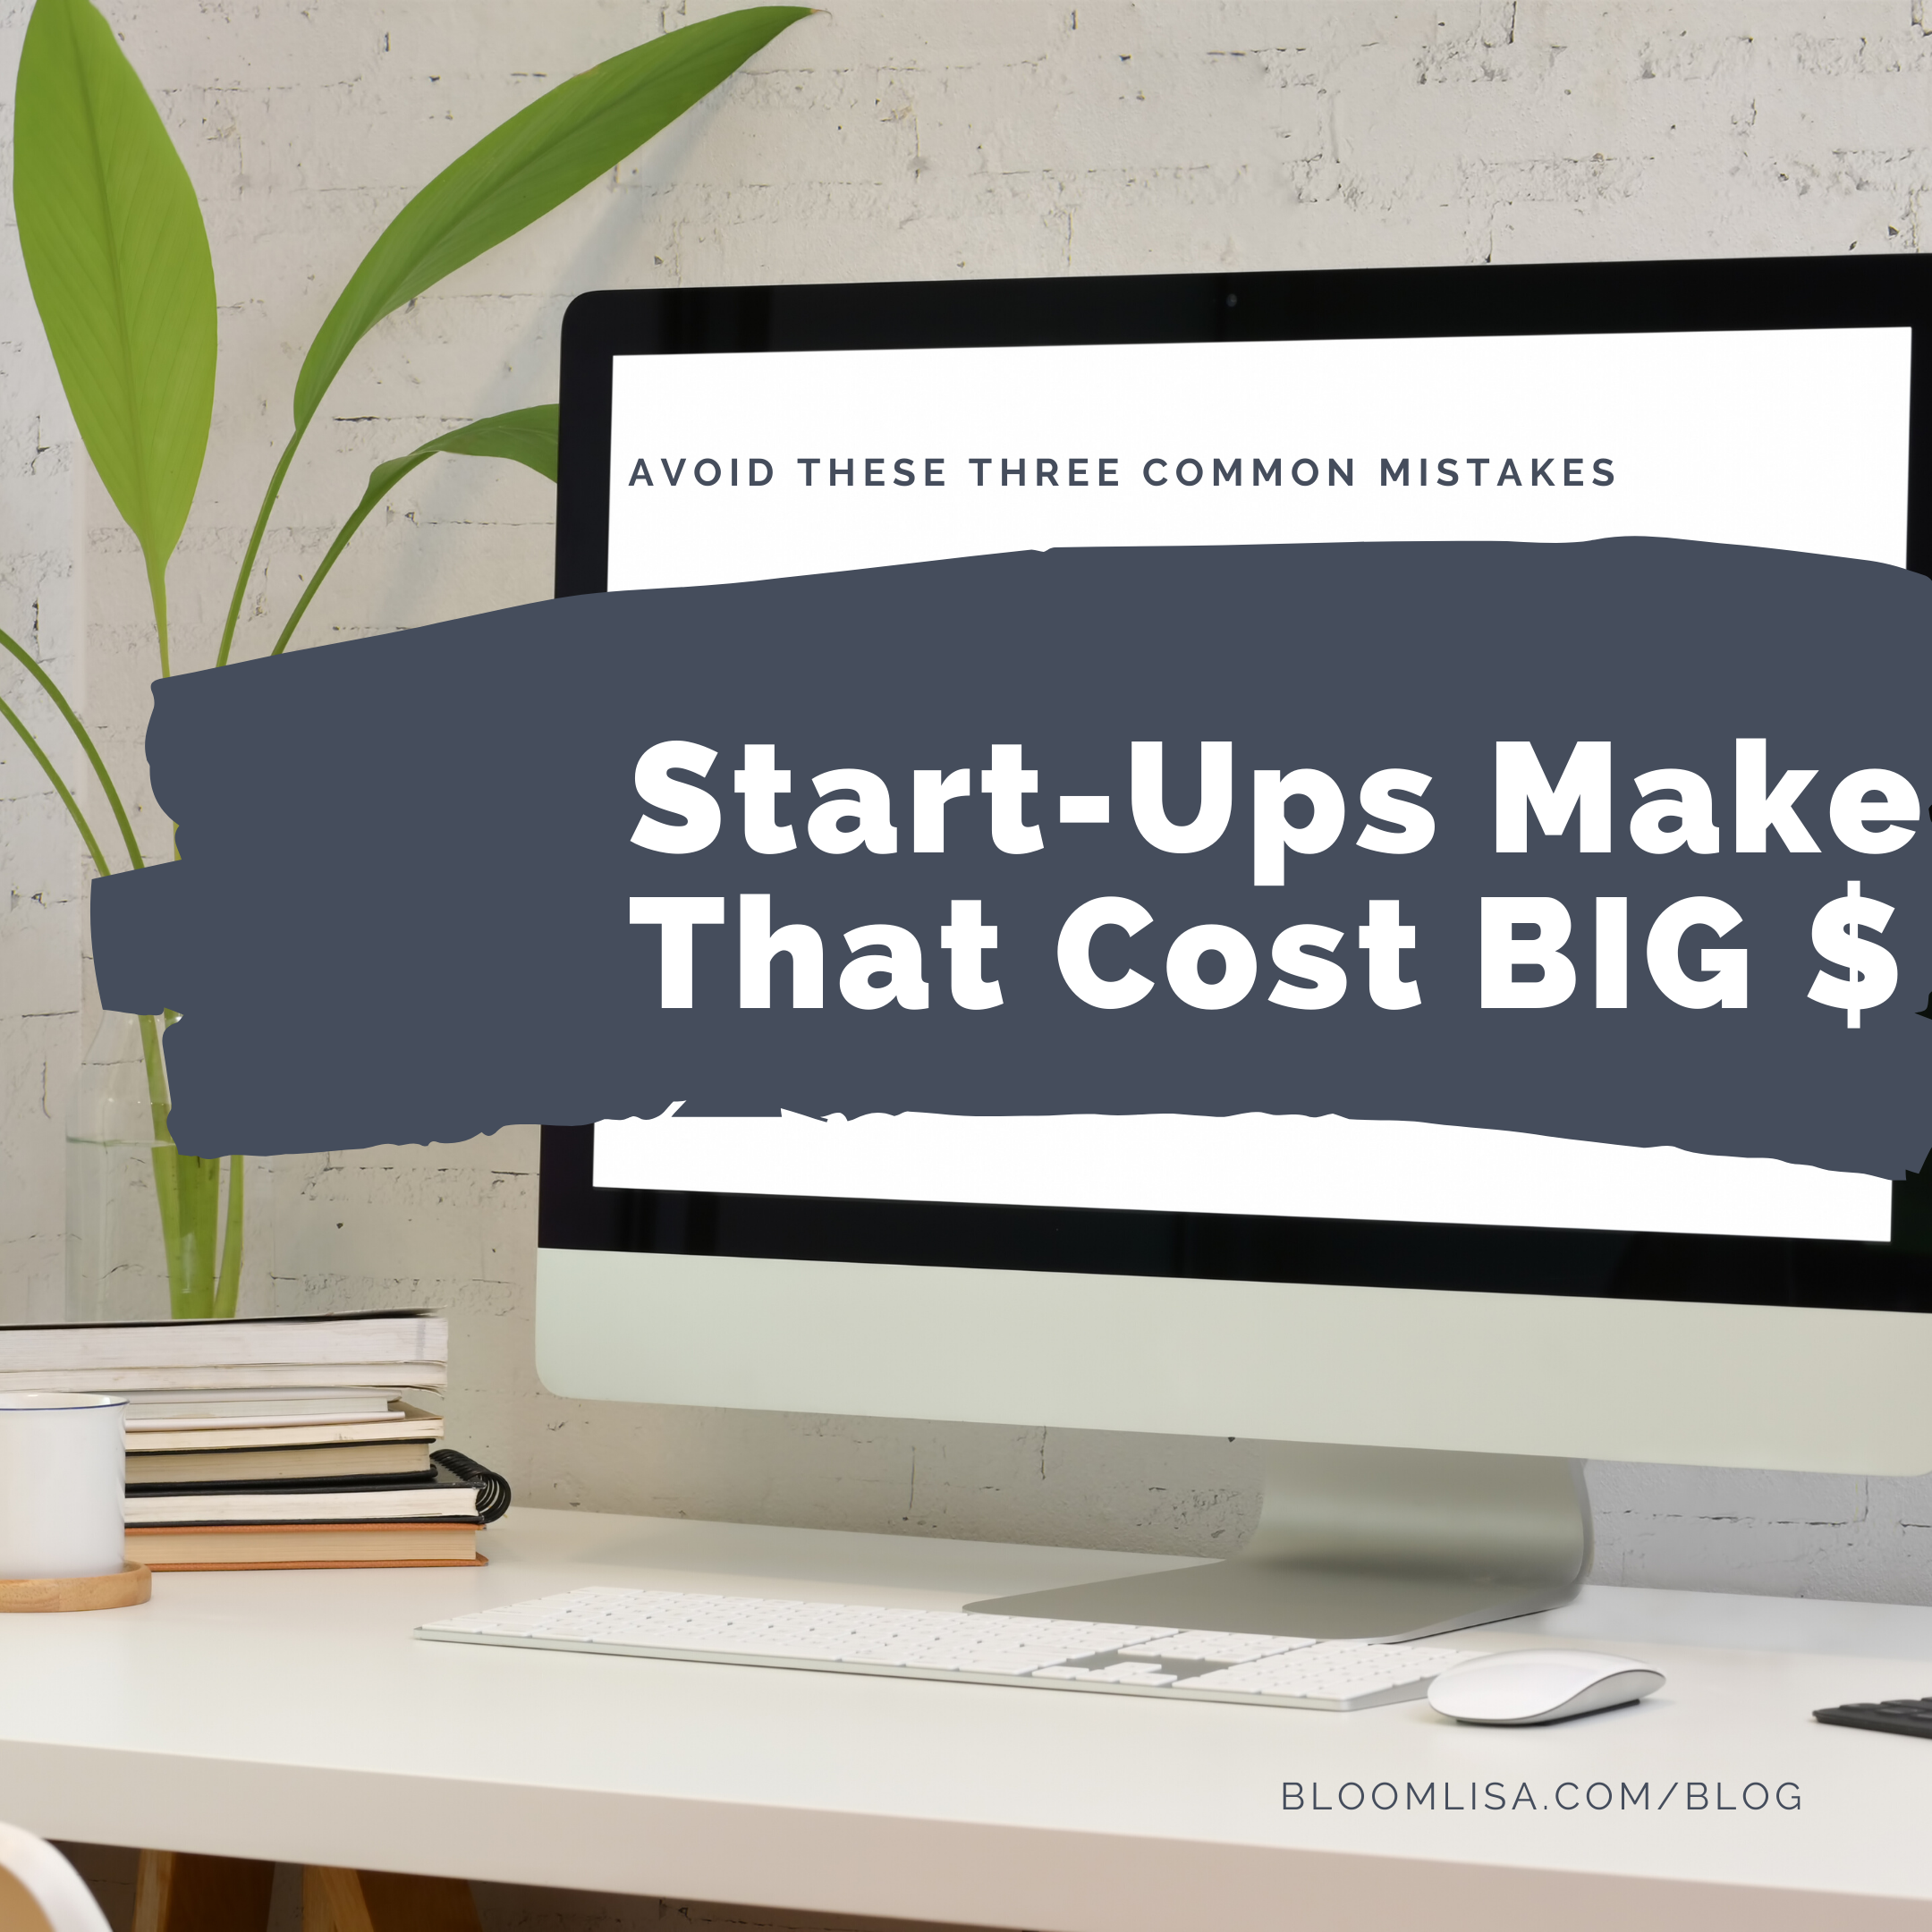 Acoid these common mistakes that cost start ups big money - by @BloomLisa